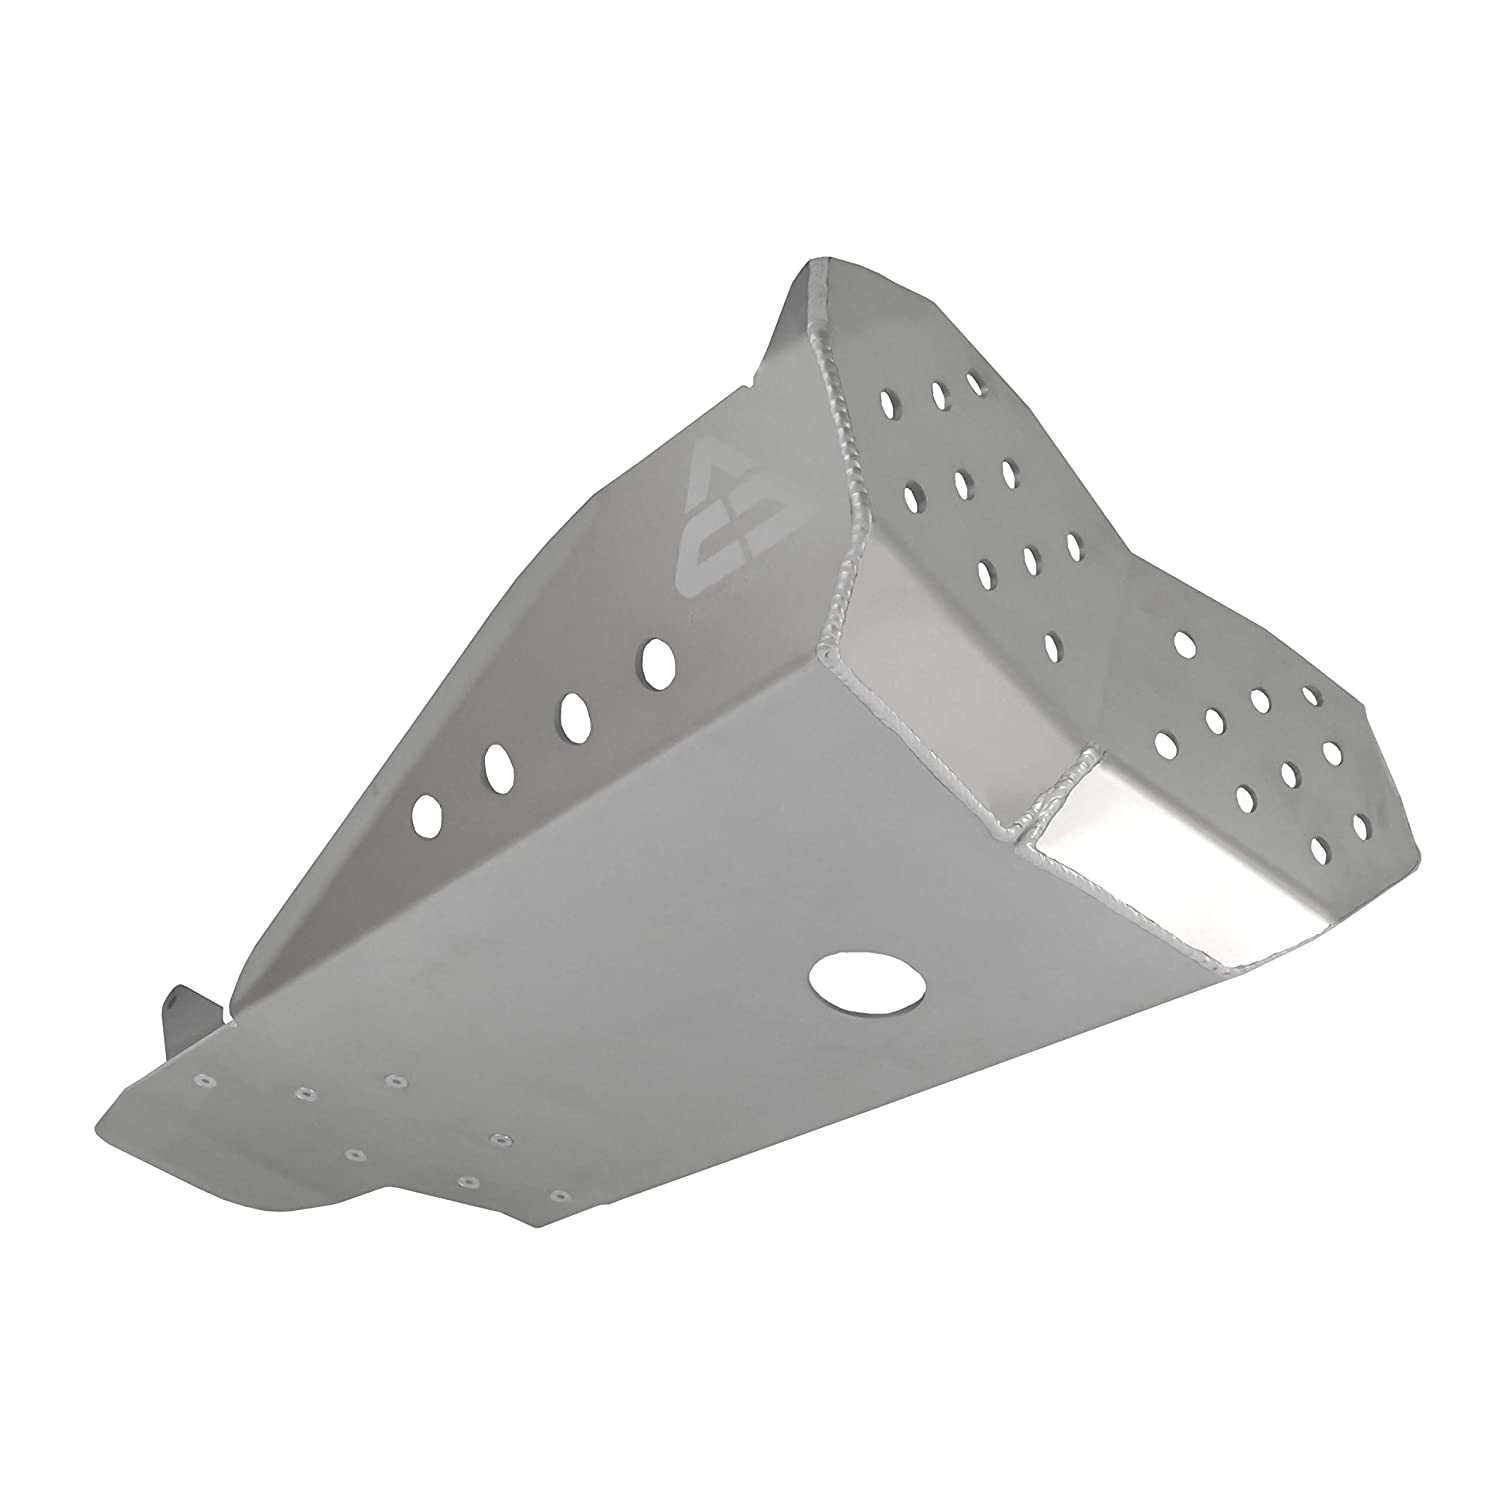 ACD Skid Plate Aluminium for BMW R1200GS LC 2015-2016-2017-2018 Engine Guard ACD